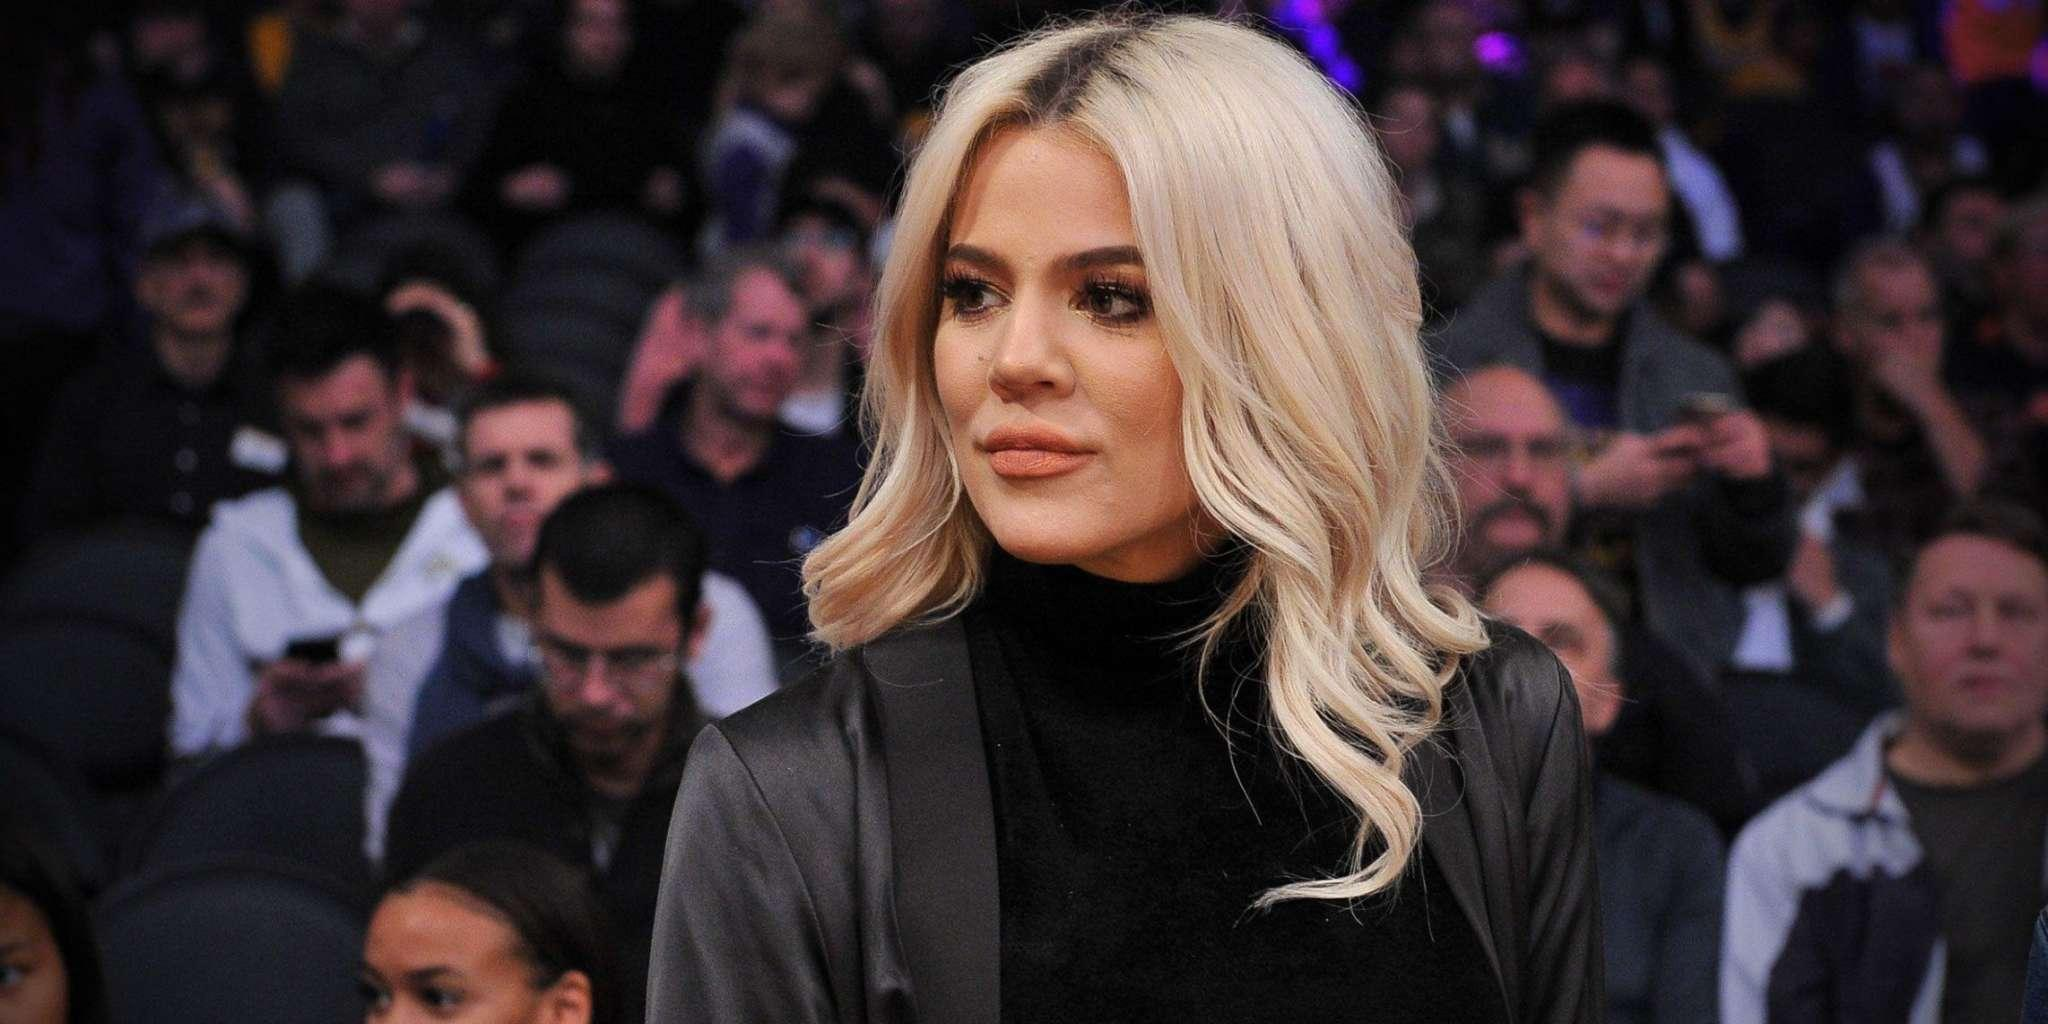 Khloe Kardashian Posts Cryptic Message On IG And Fans Are Positive It's About Tristan Thompson